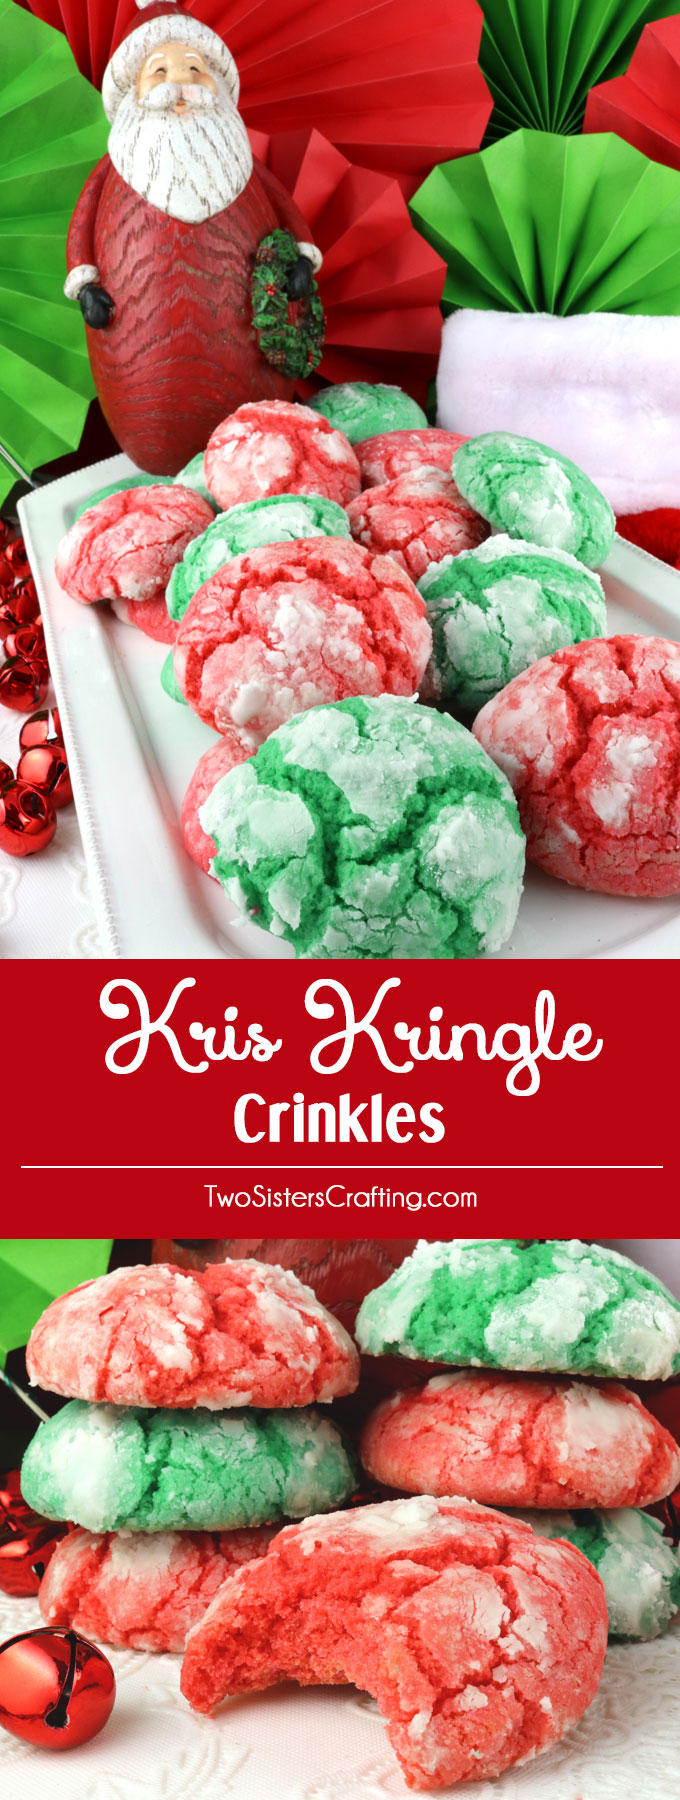 Kris Kringle Crinkles - light and fluffy on the inside and sweet and crunchy on the outside. A yummy homemade Crinkle cookie recipe that is not made from a cake mix. This classic Christmas cookie recipe is a keeper.  This fun and easy treat would be a great Christmas dessert idea for a Christmas Party, a holiday gift basket or a Christmas Cookie exchange. Pin this easy Holiday cookie recipe for later and follow us for more great Christmas Food ideas. #ChristmasCookies #ChristmasDesserts #ChristmasTreats